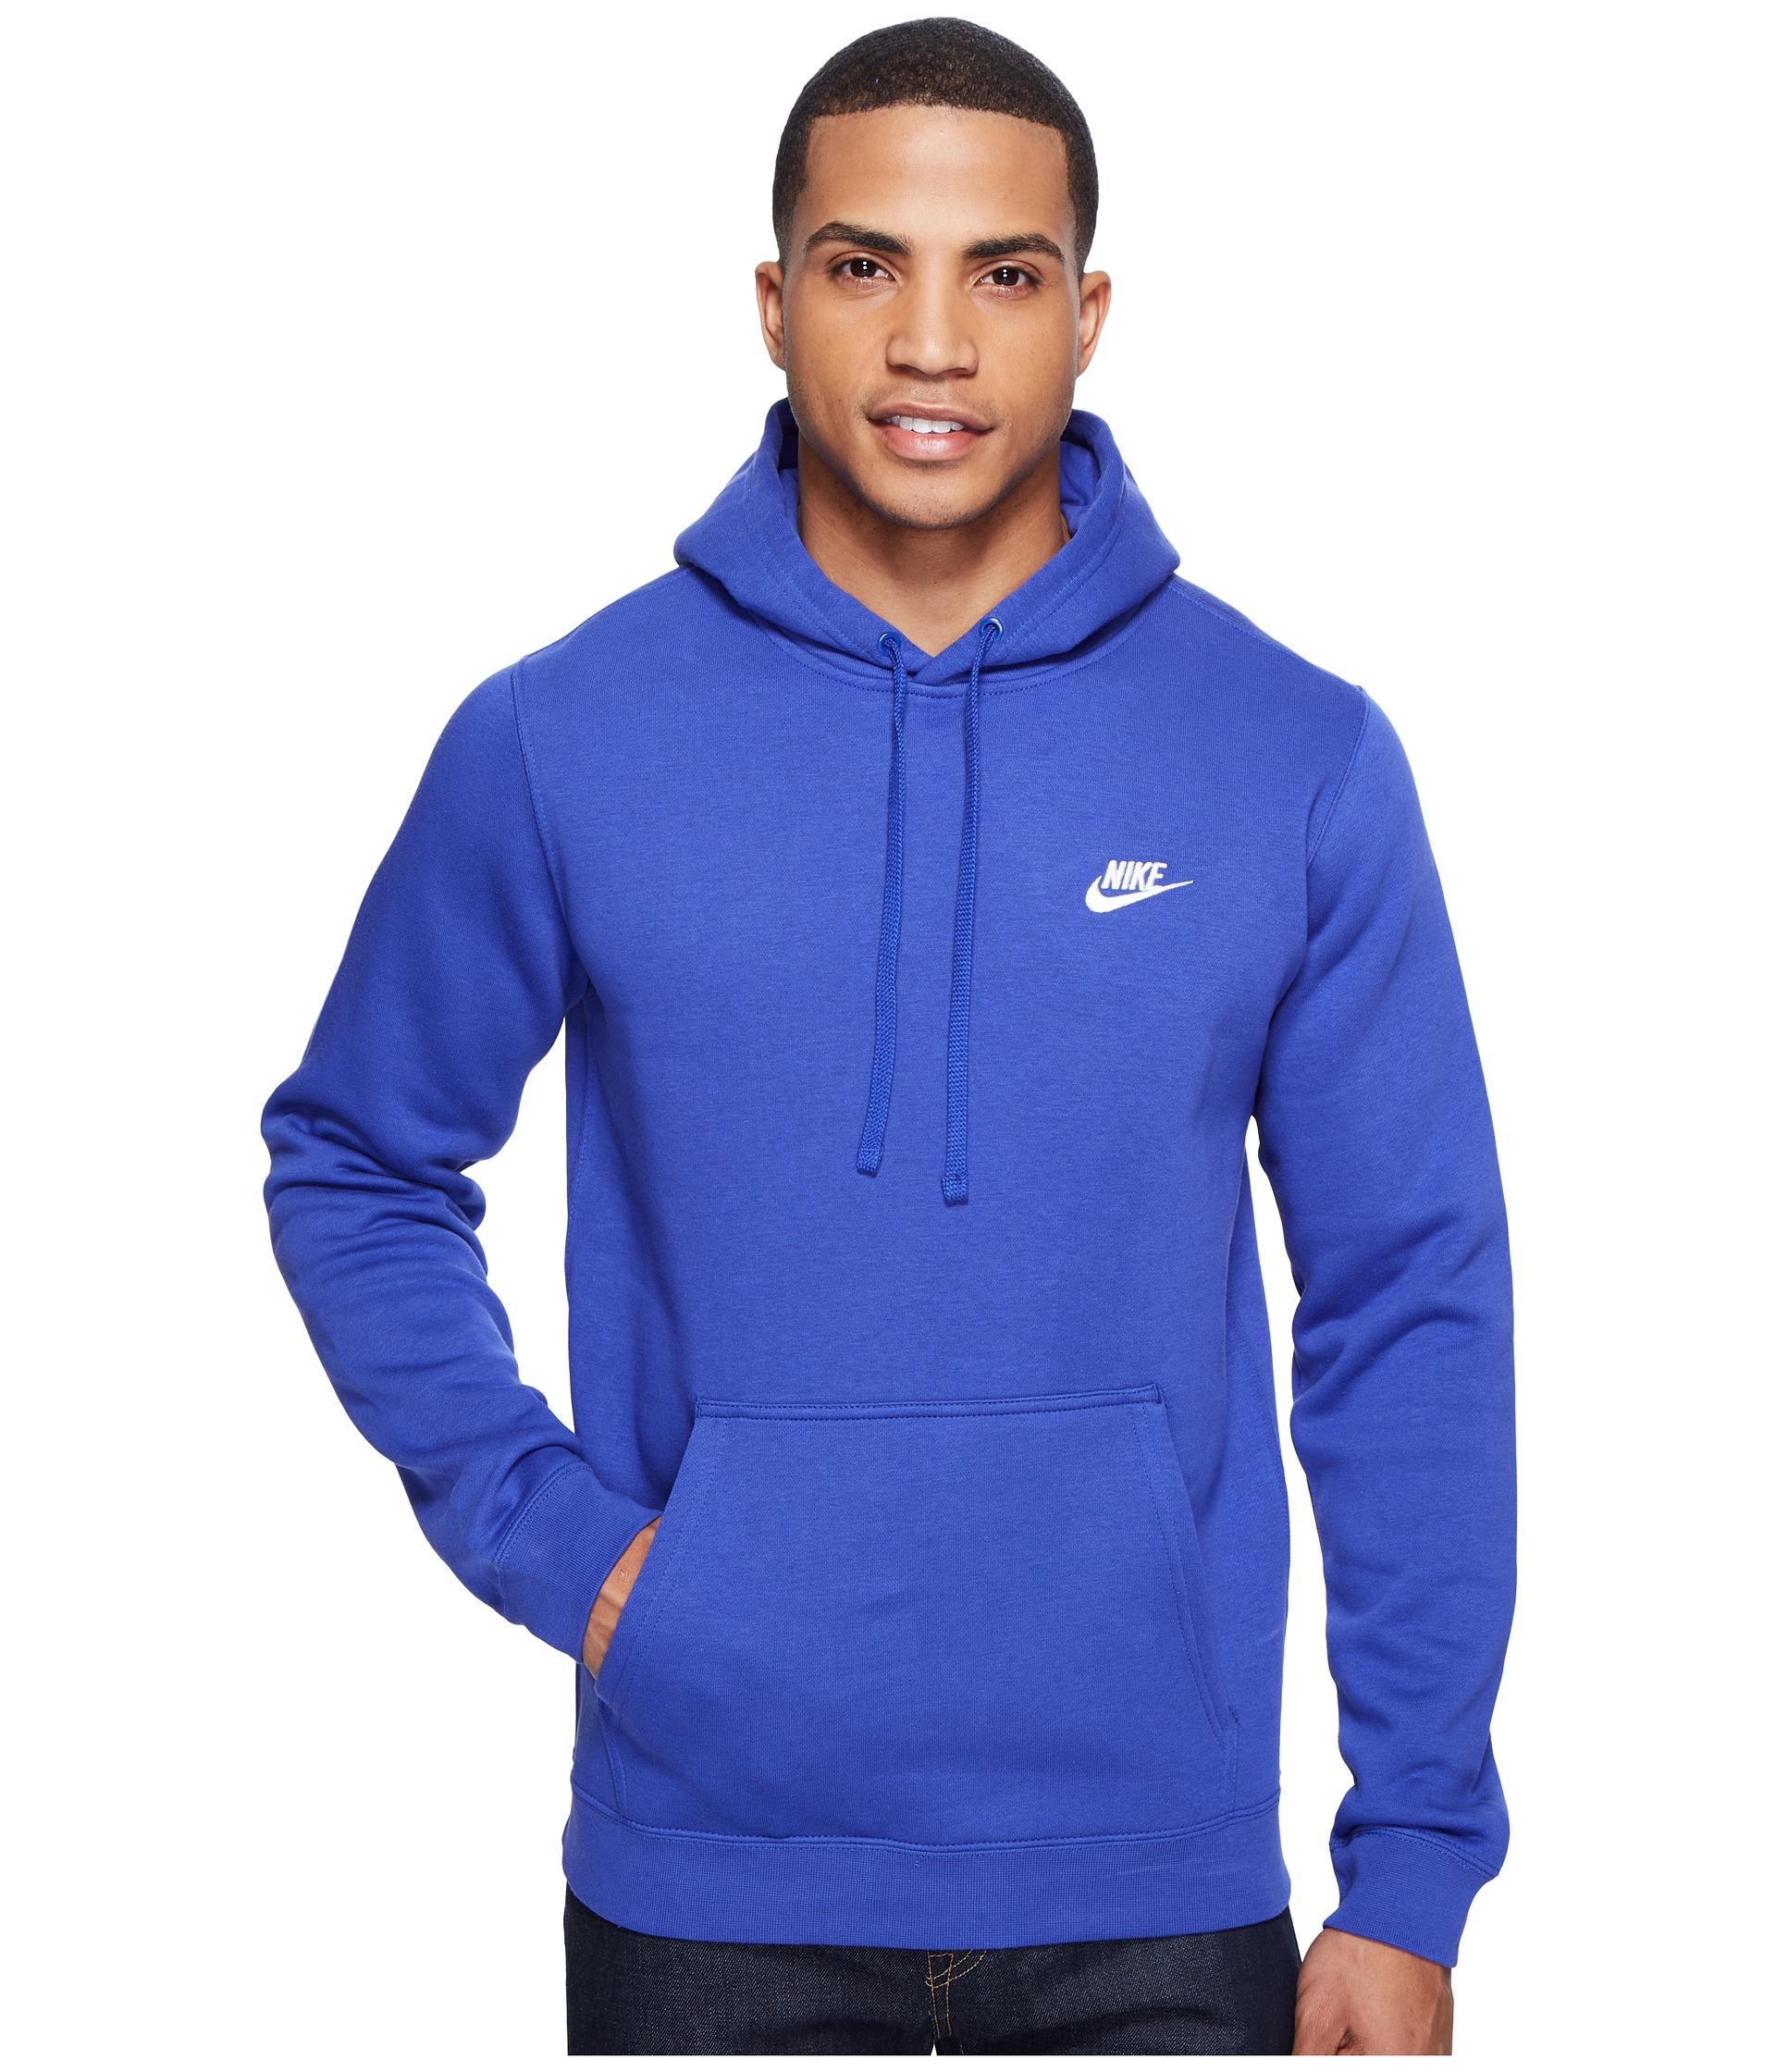 76e6705a97a4 Lyst - Nike Club Fleece Pullover Hoodie in Blue for Men